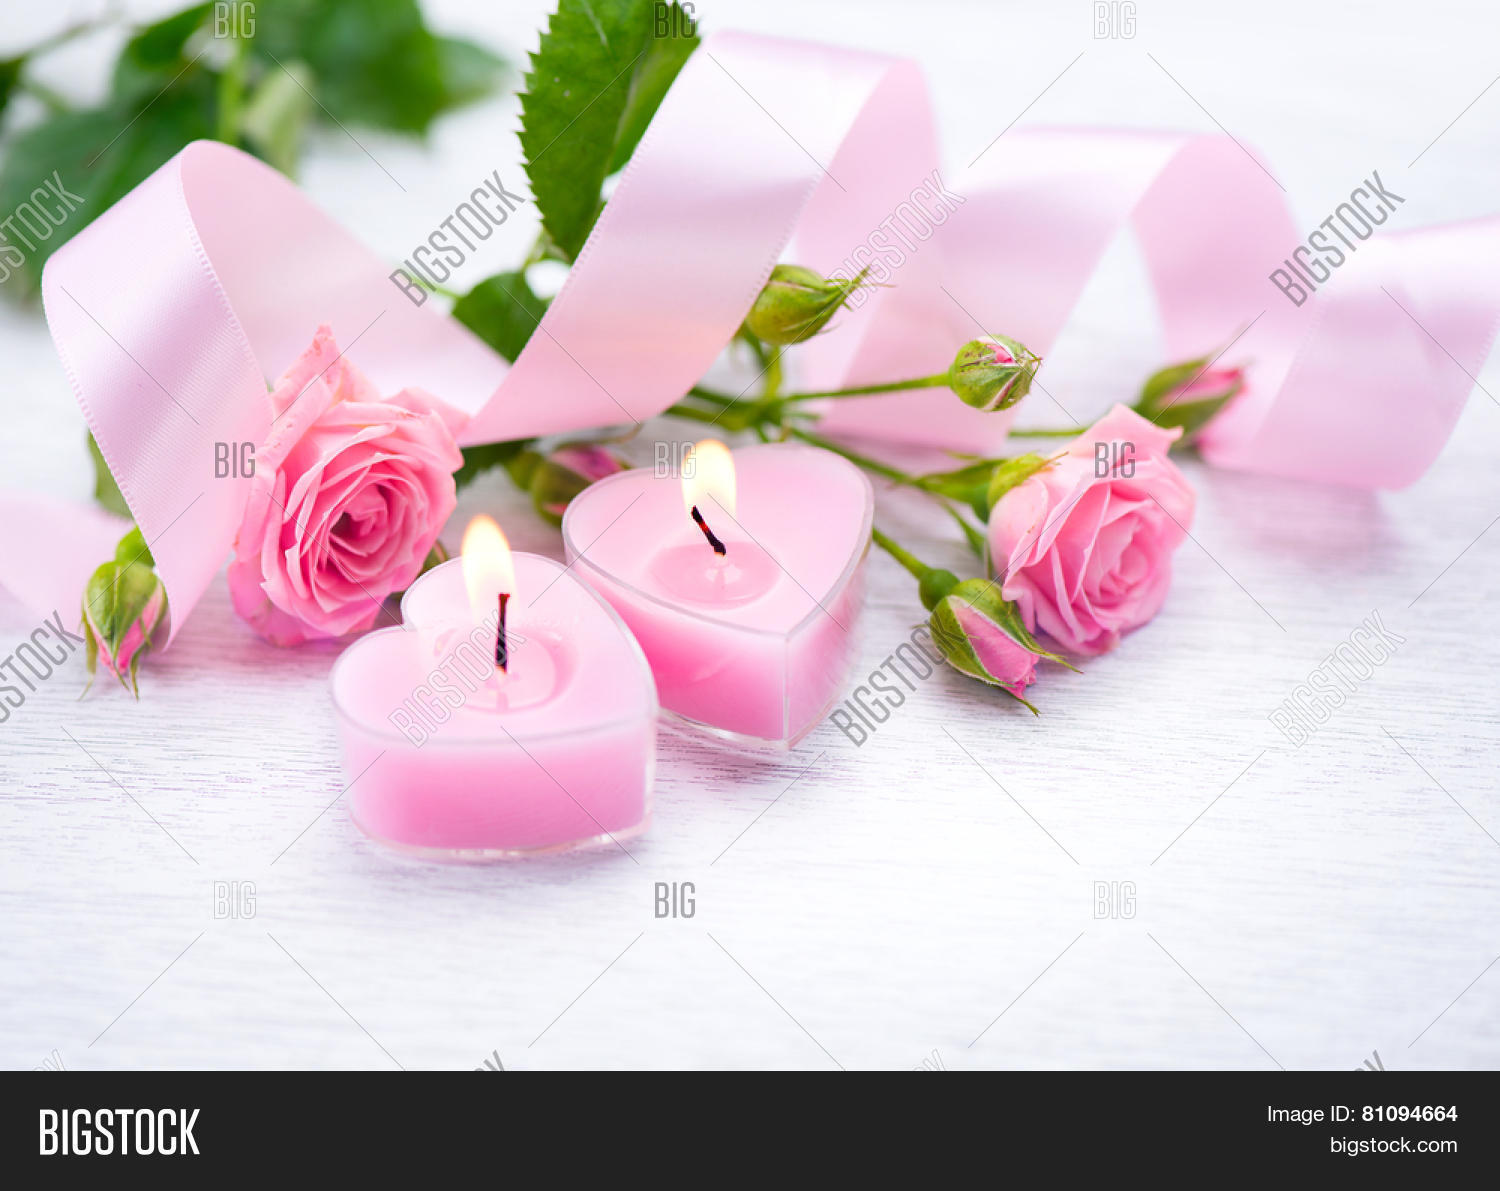 Valentines Day Image Photo Free Trial Bigstock